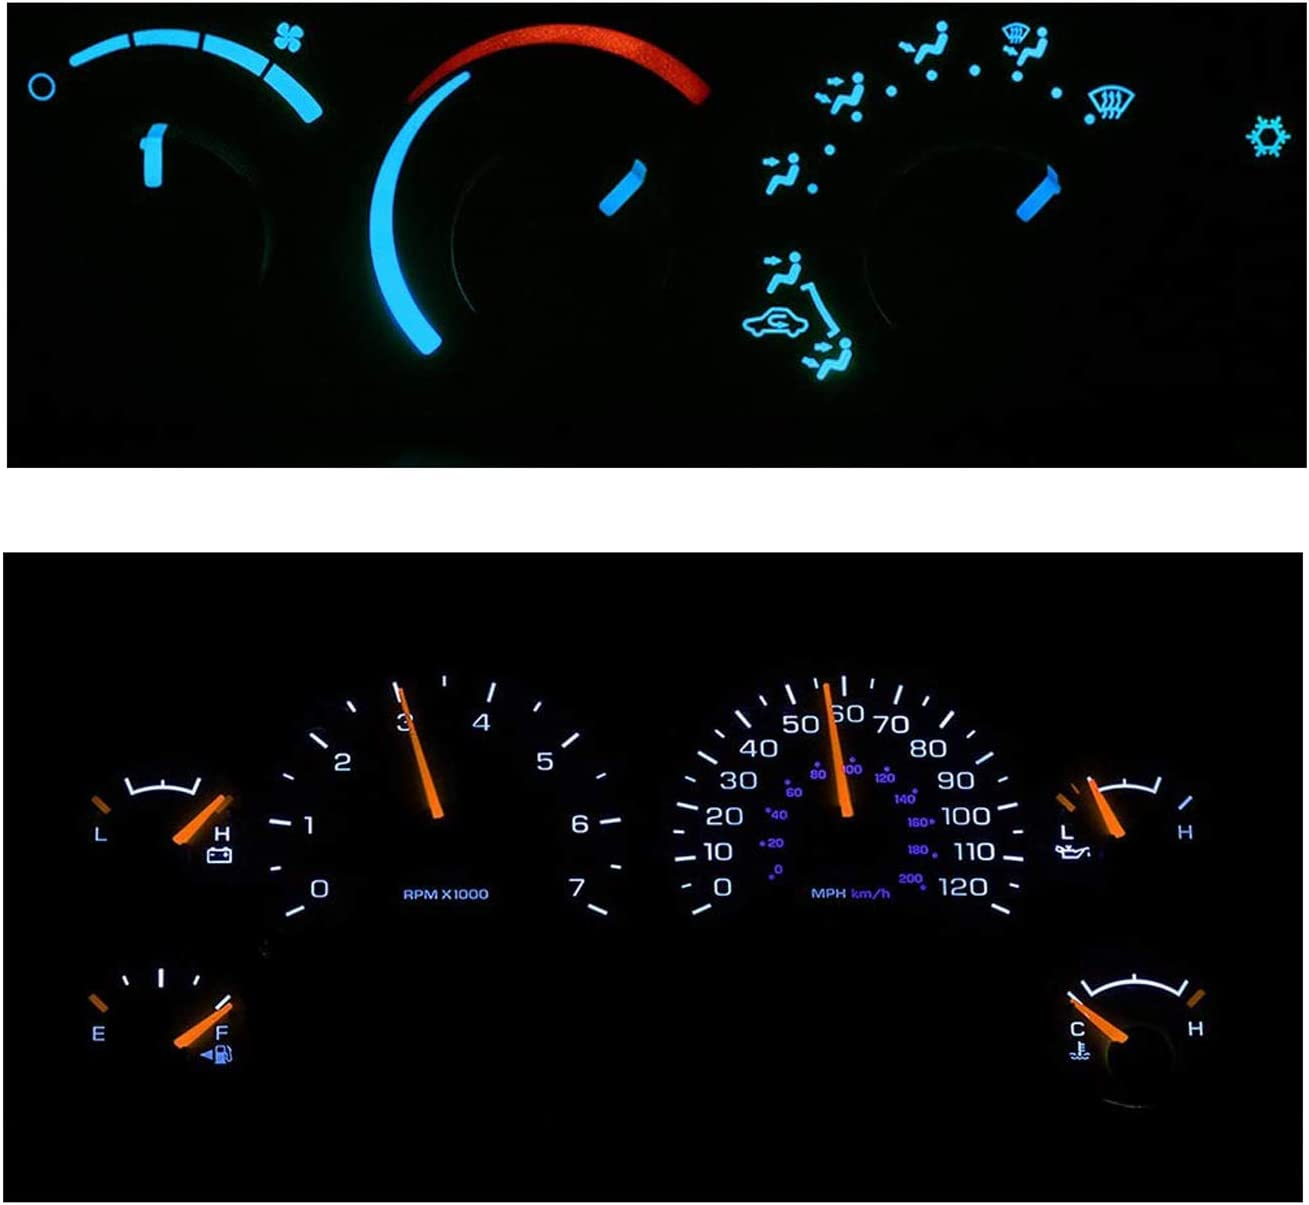 HERCOO LED Lights Bulbs Kit of AC Climate Heater Control /& Instrument Gauge Cluster Speedometer Compatible with 2003-2008 Dodge Ram 1500 2500 3500 Aftermarket Replacement